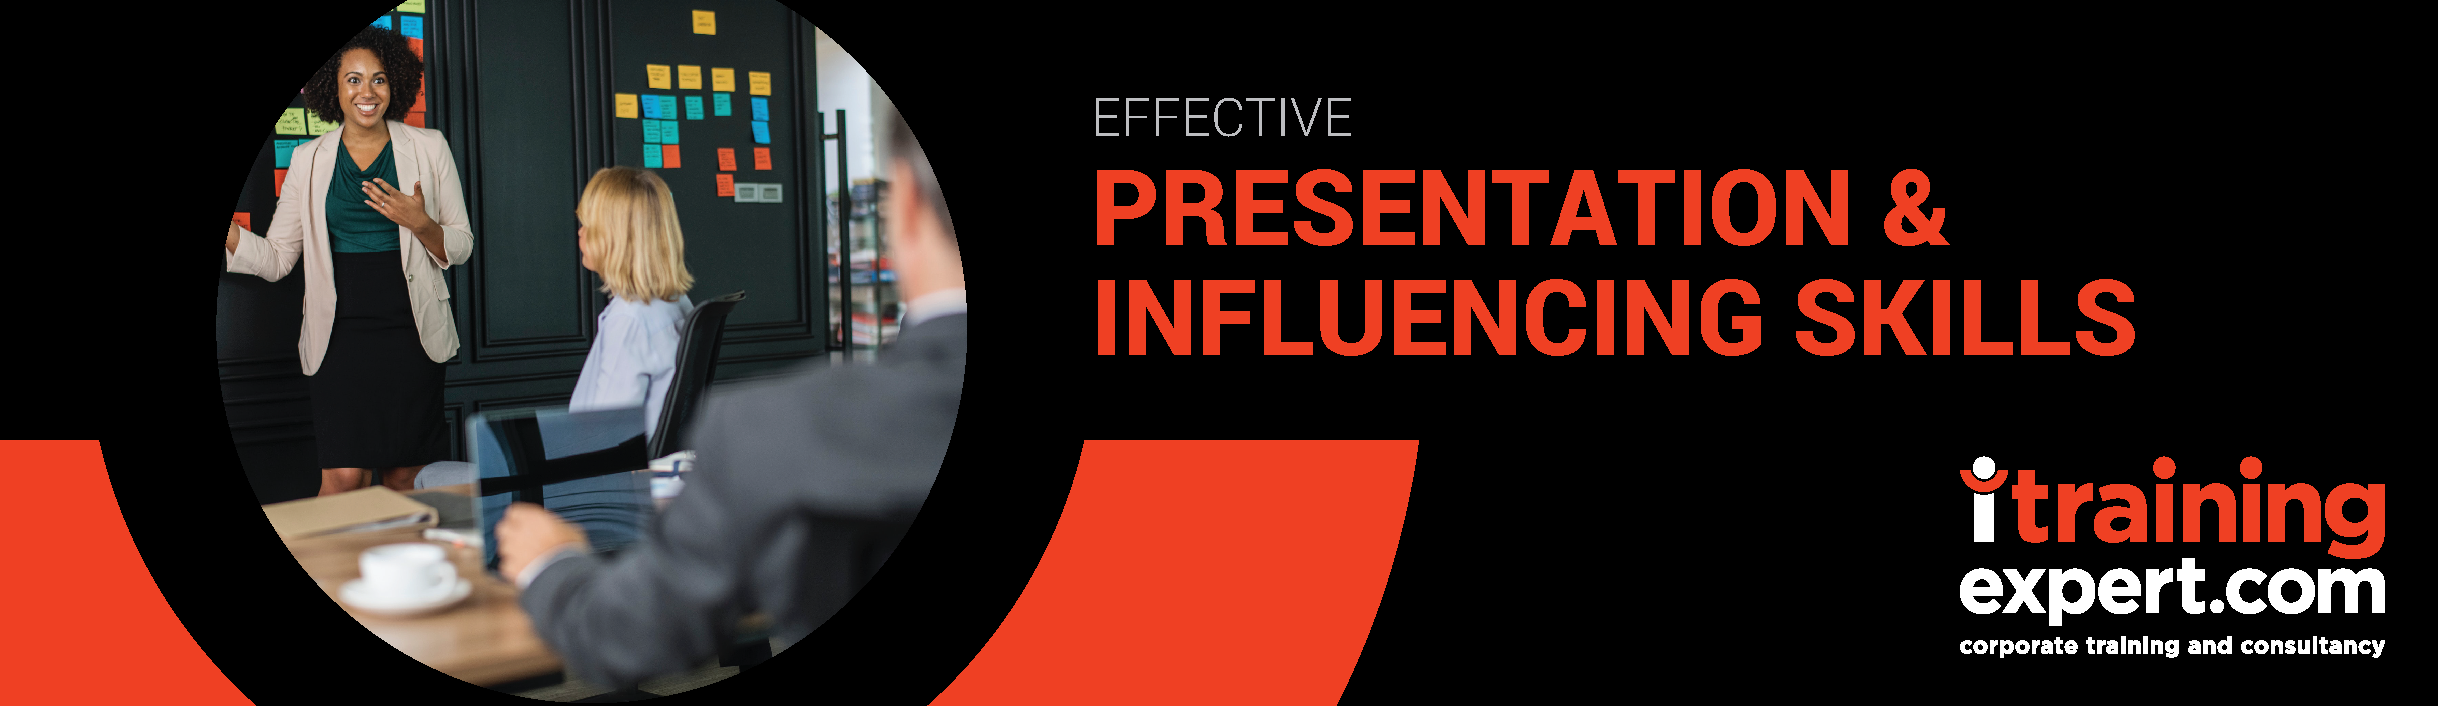 Effective Presentation & Influencing Skills Using NLP